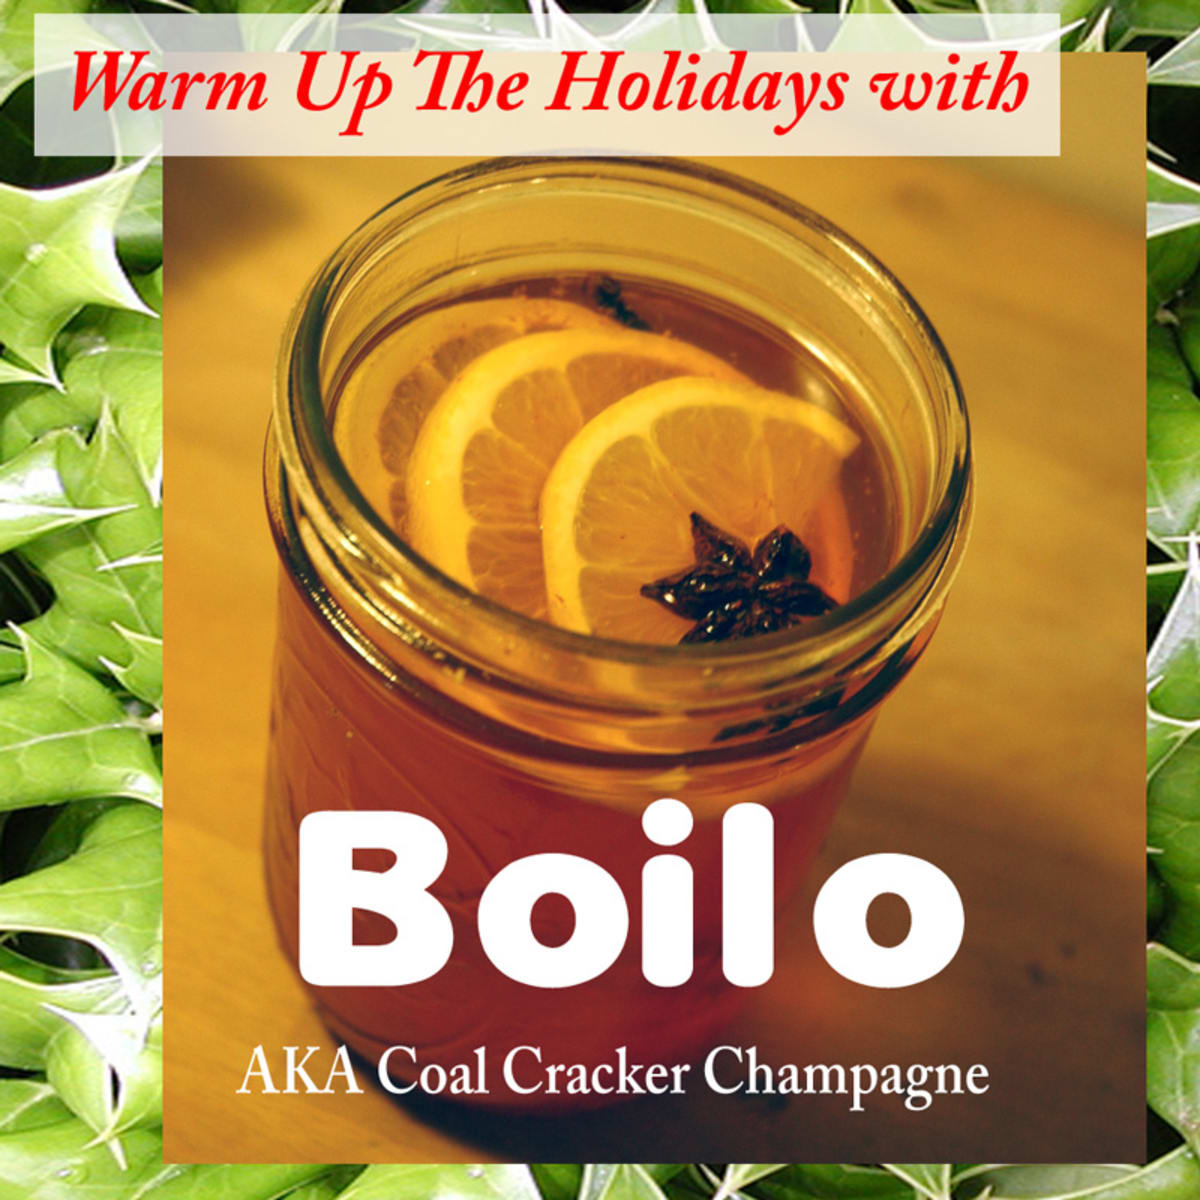 How To Make Boilo A Pennsylvania Holiday Beverage Delishably